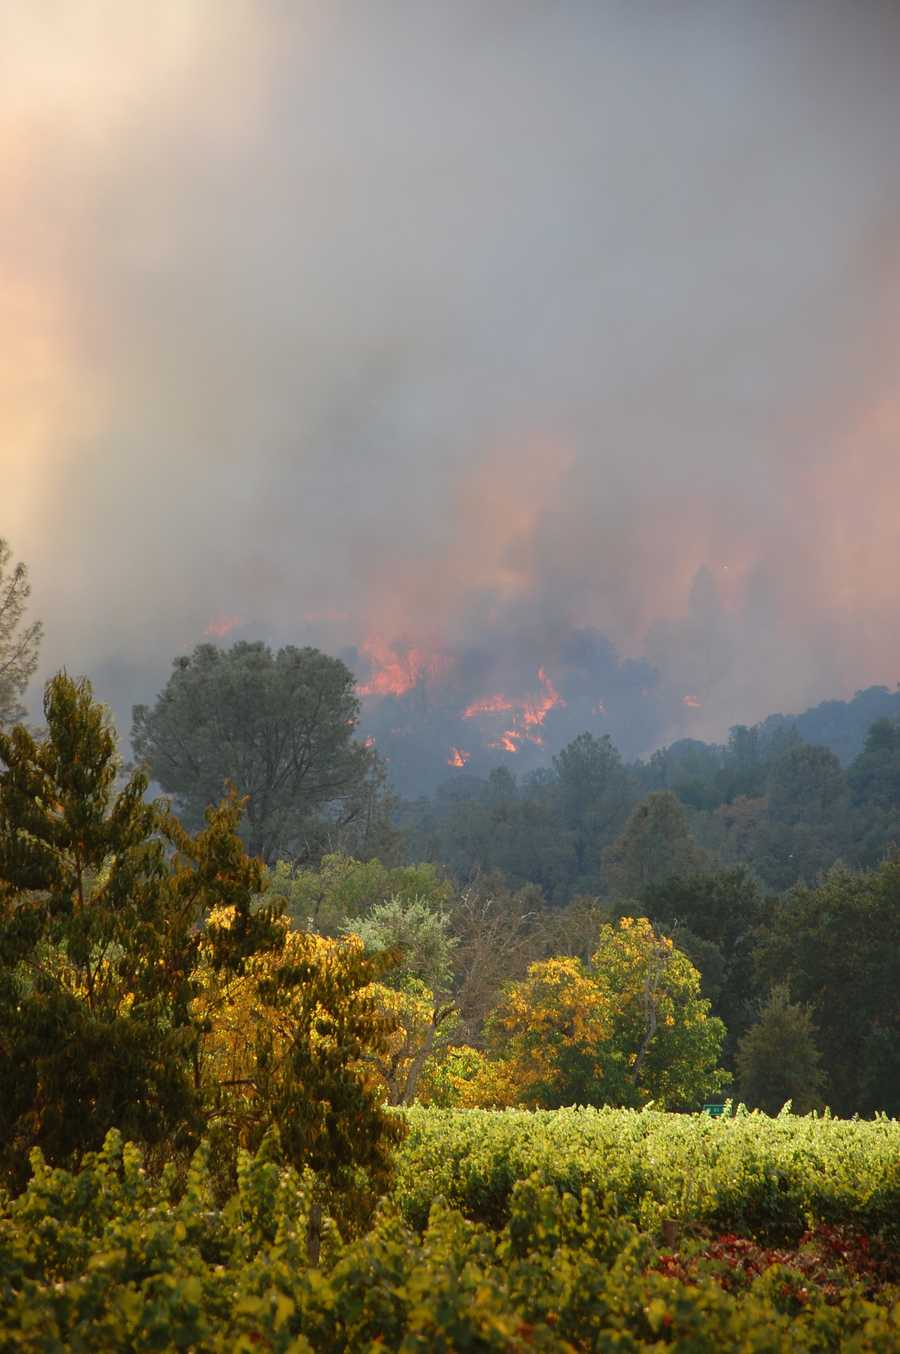 Cal Fire firefighters are optimistic that next week's weather forecast includes rain, which would help bring the state's fire season to an end.